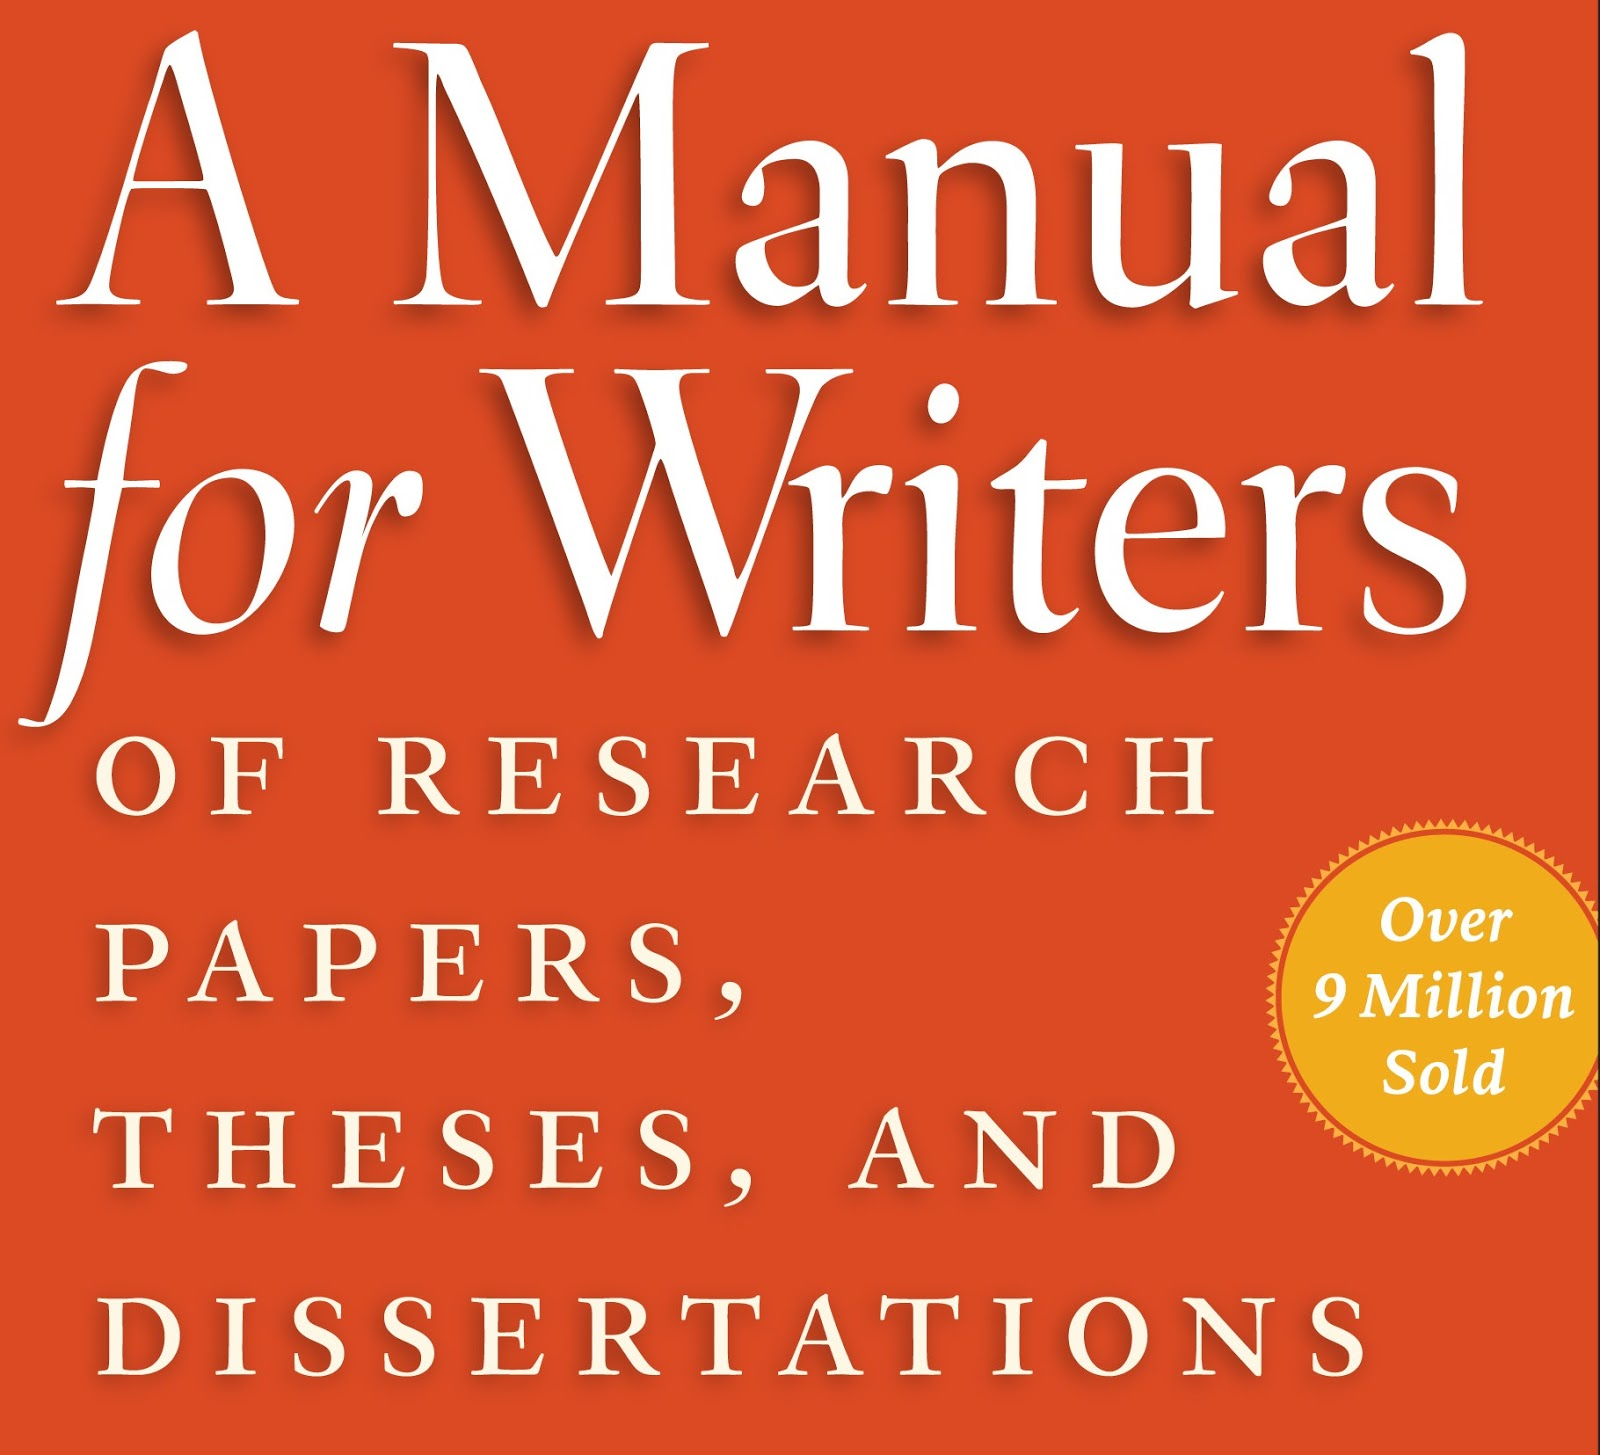 a manual for writers of research papers theses and dissertations Business plan writing services south africa manual for writers of term papers theses and dissertations good essay mother teresa outline essay.